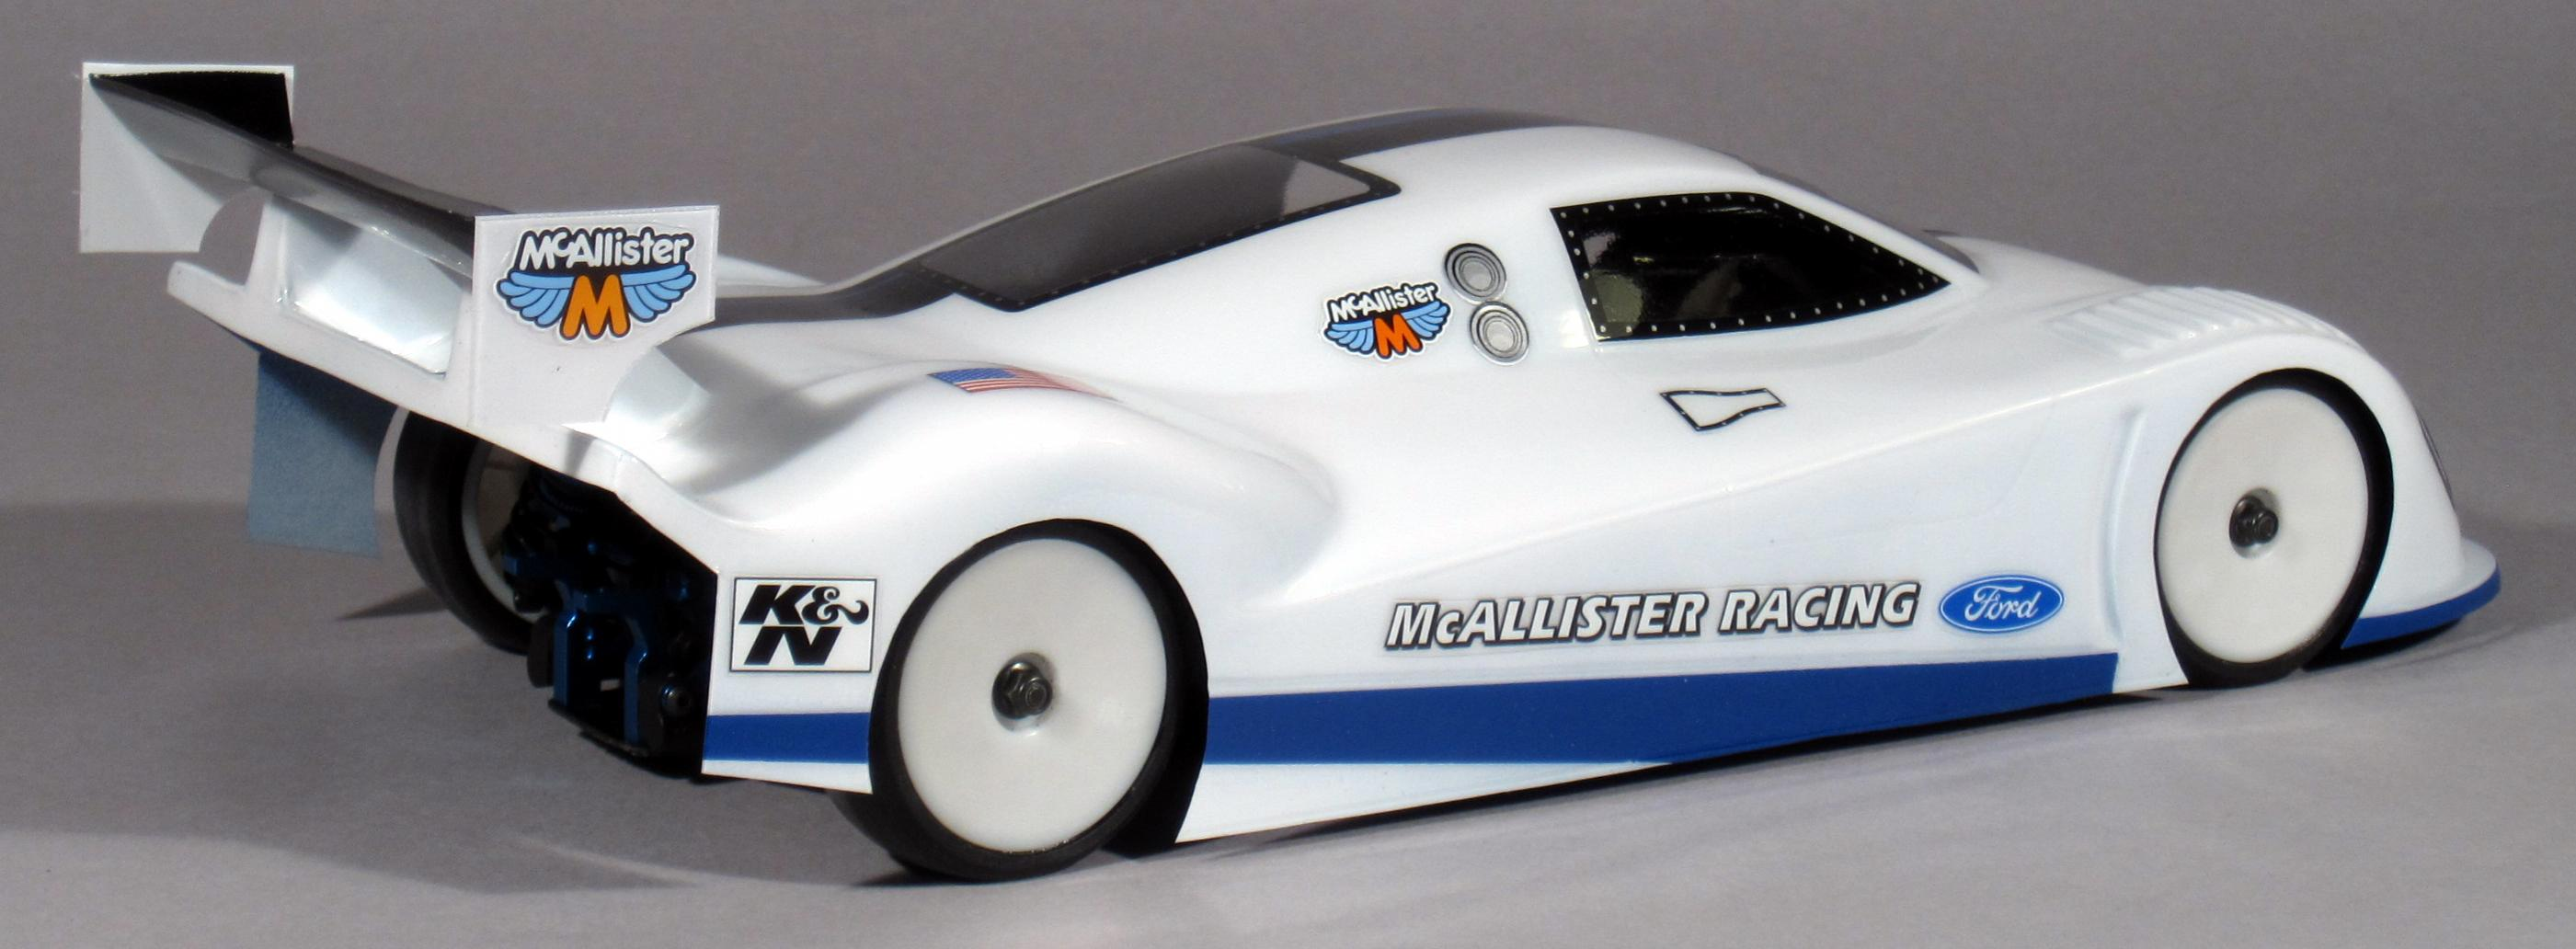 racing rc cars html with 773043 New Body Release Daytona Prototype on Mcd Brushless Set in addition 773043 New Body Release Daytona Prototype besides 32821240984 furthermore 515242 Honda Vfr 750 F Rc36 Tuning moreover Build The Senna Mclaren.